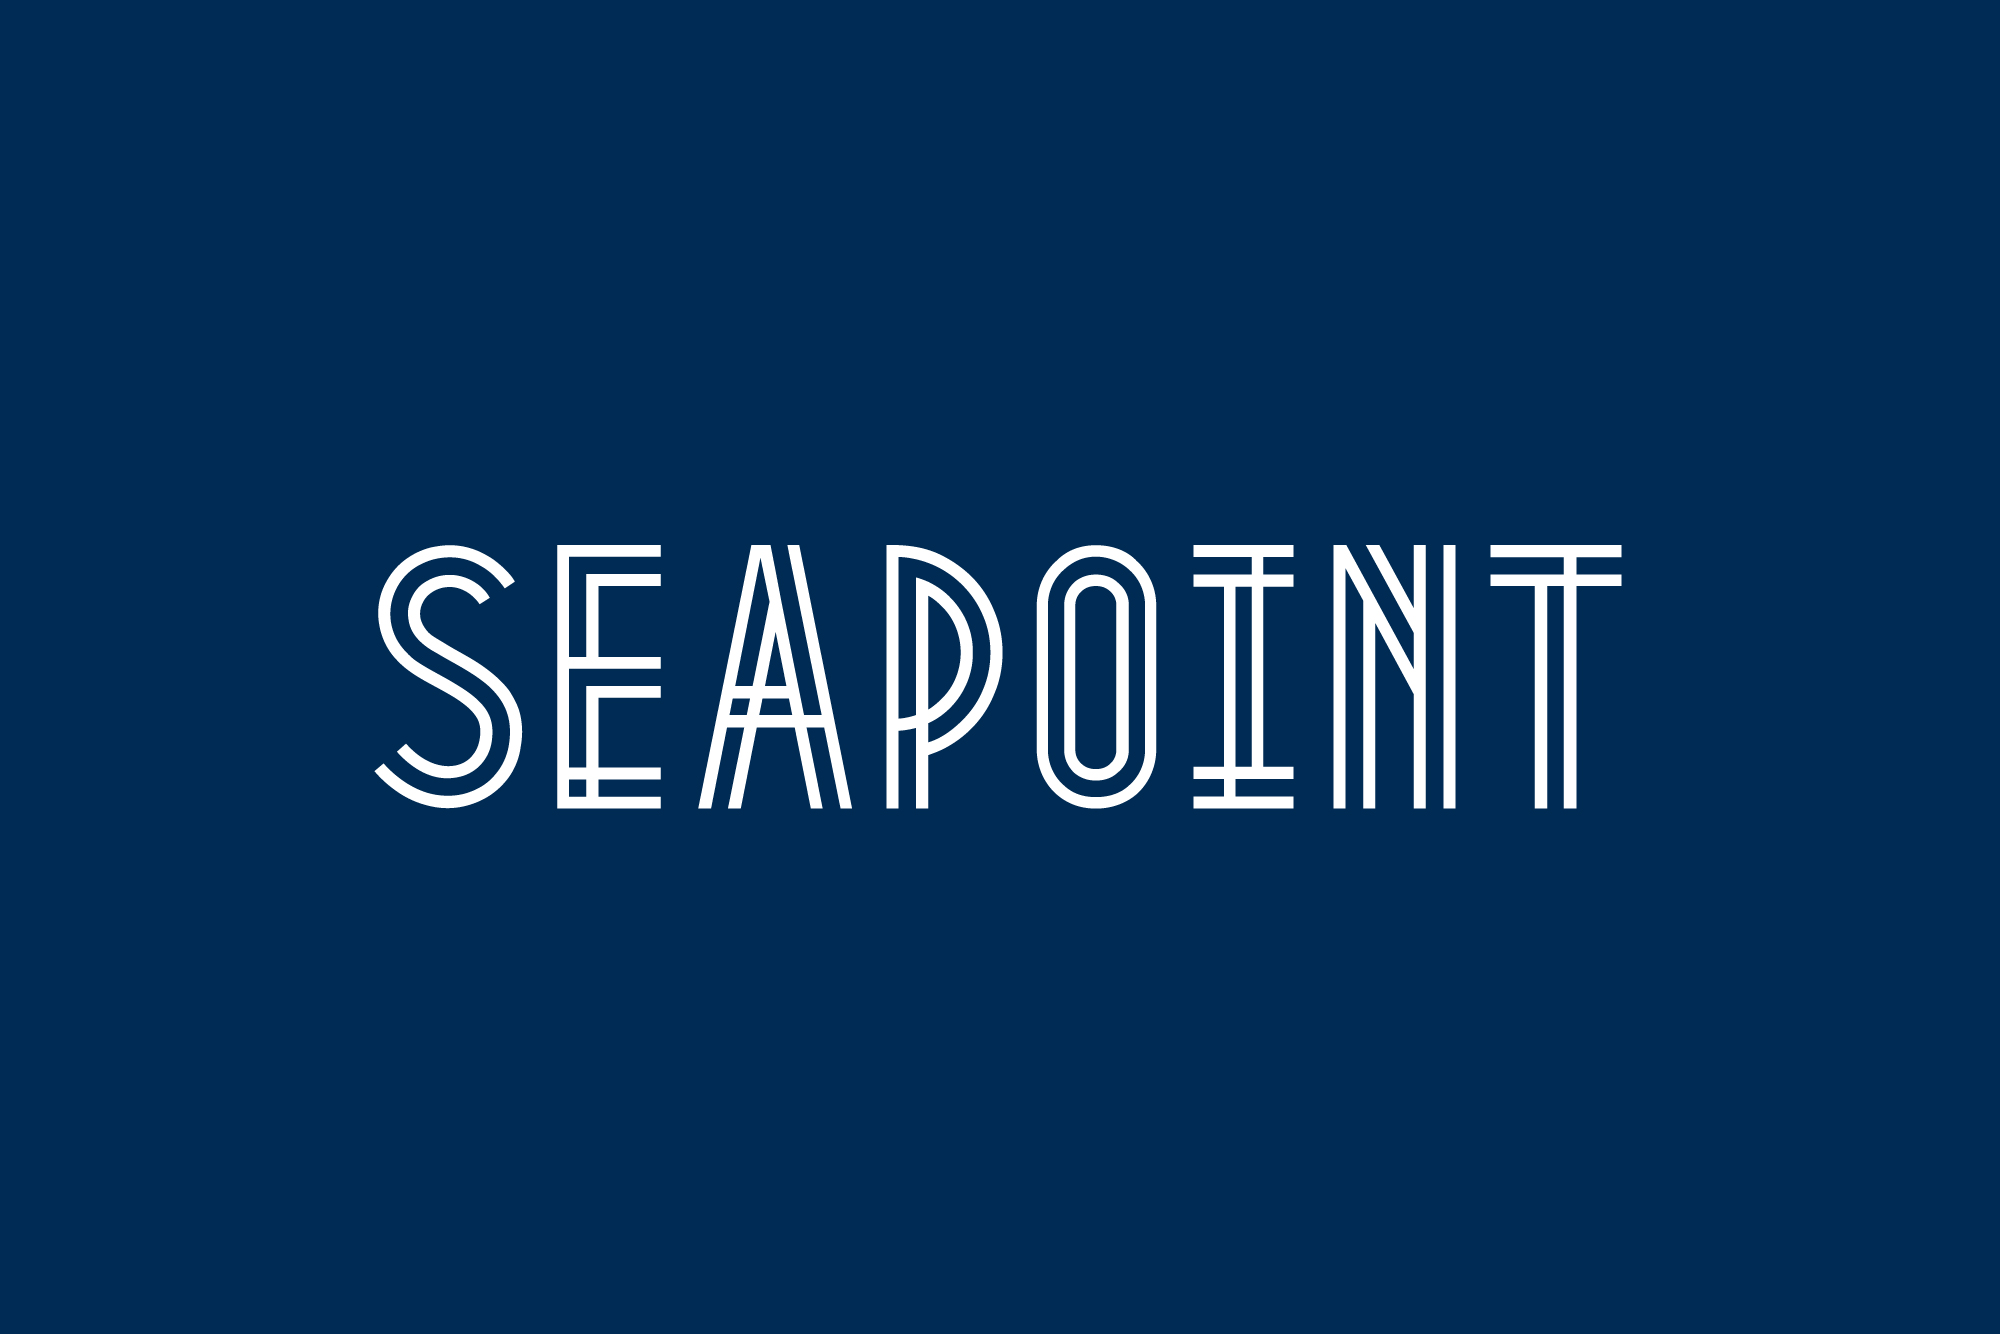 Cover image: Seapoint (2014)